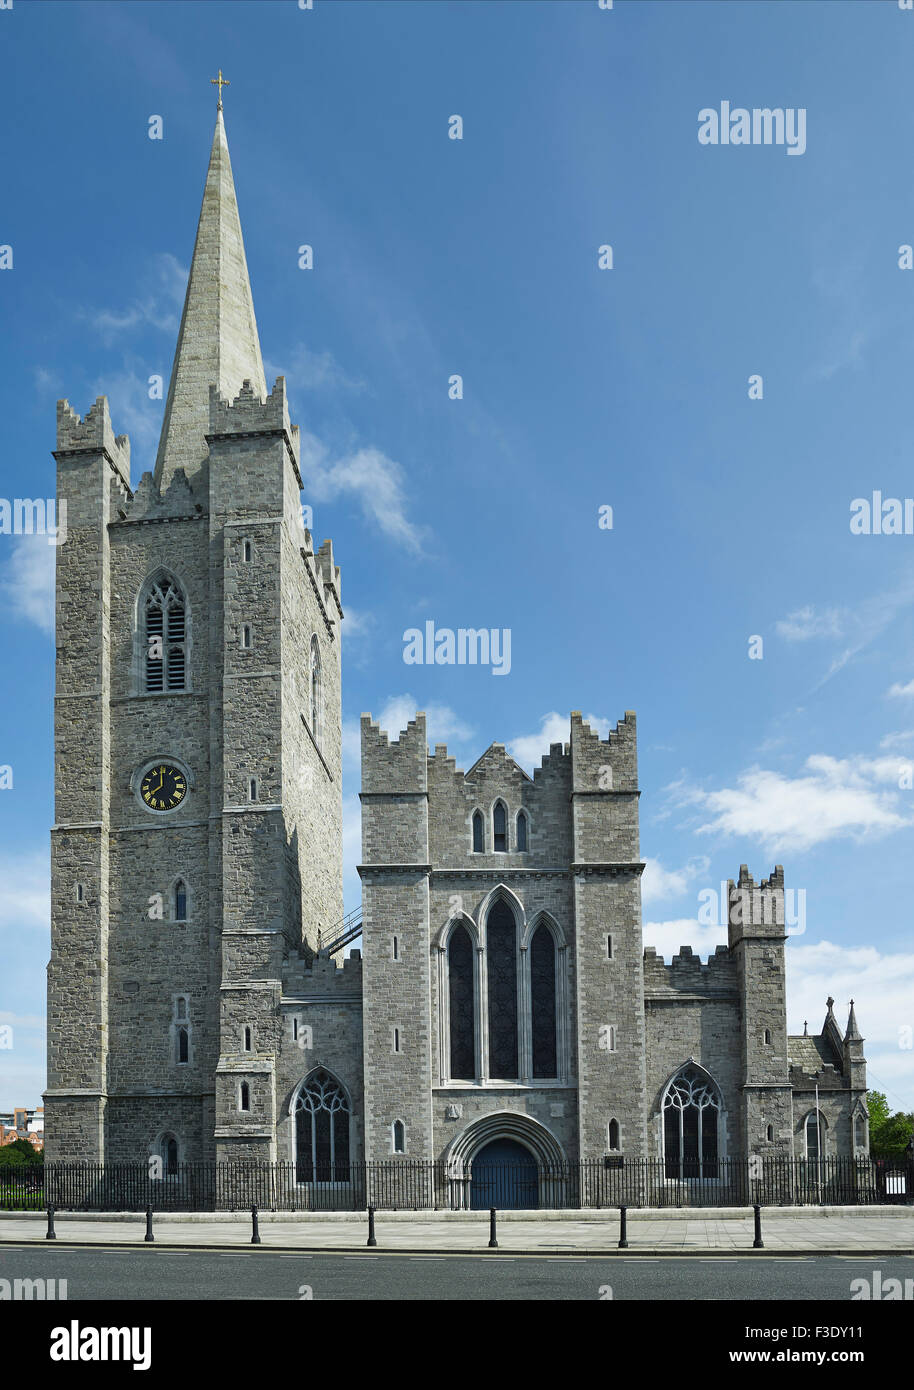 St Patrick's Cathedral Dublin west front - Stock Image